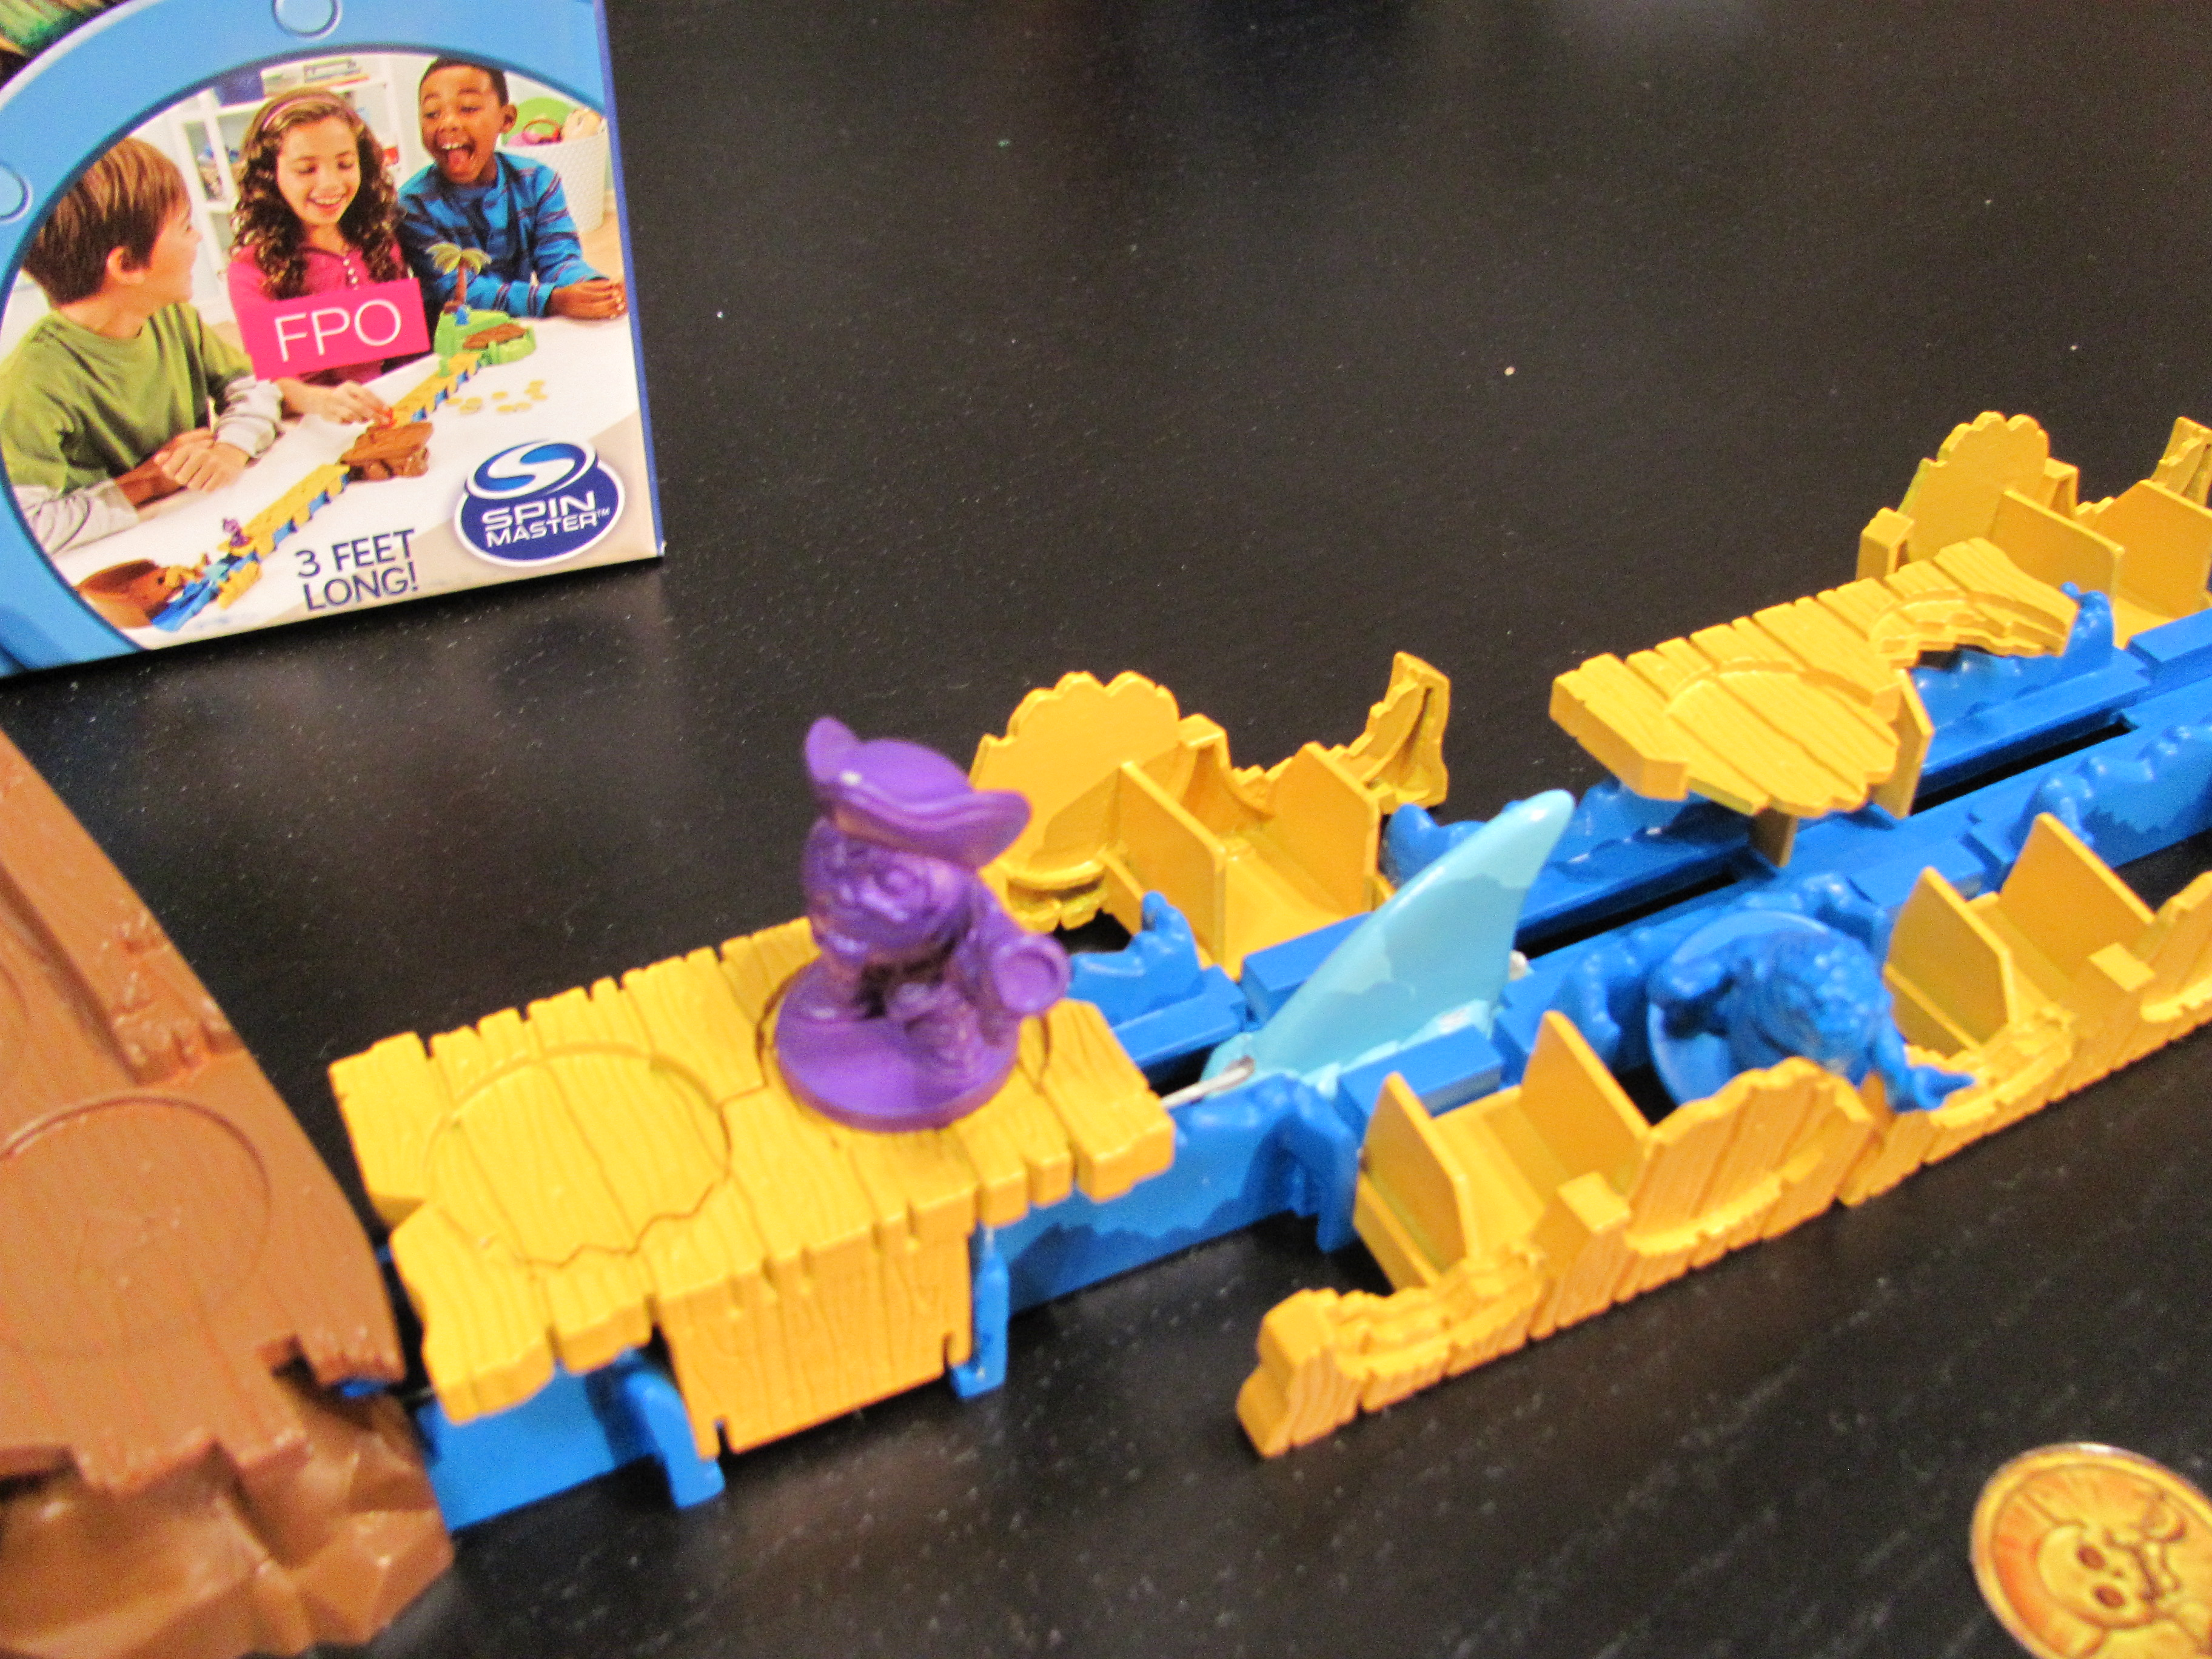 Shark Toys And Games : Toy fair —spin master games purple pawn